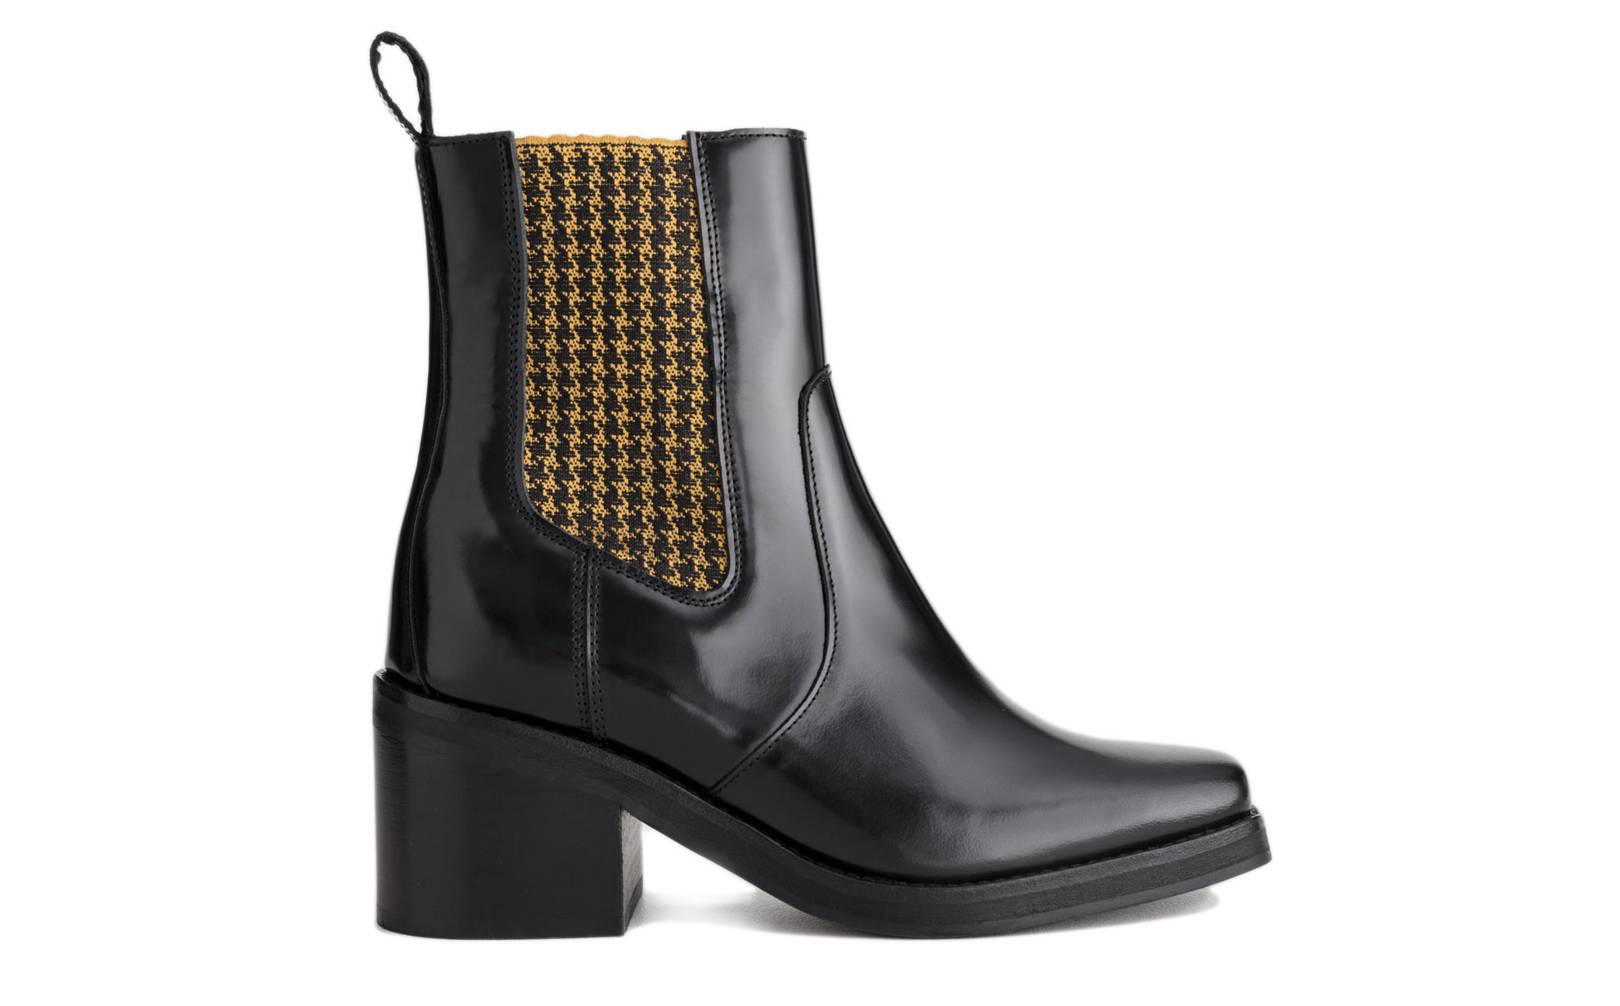 f5c8017ad03a7 The Best Winter Boots 2018 | Best High Street & Affordable Winter Boots |  British Vogue